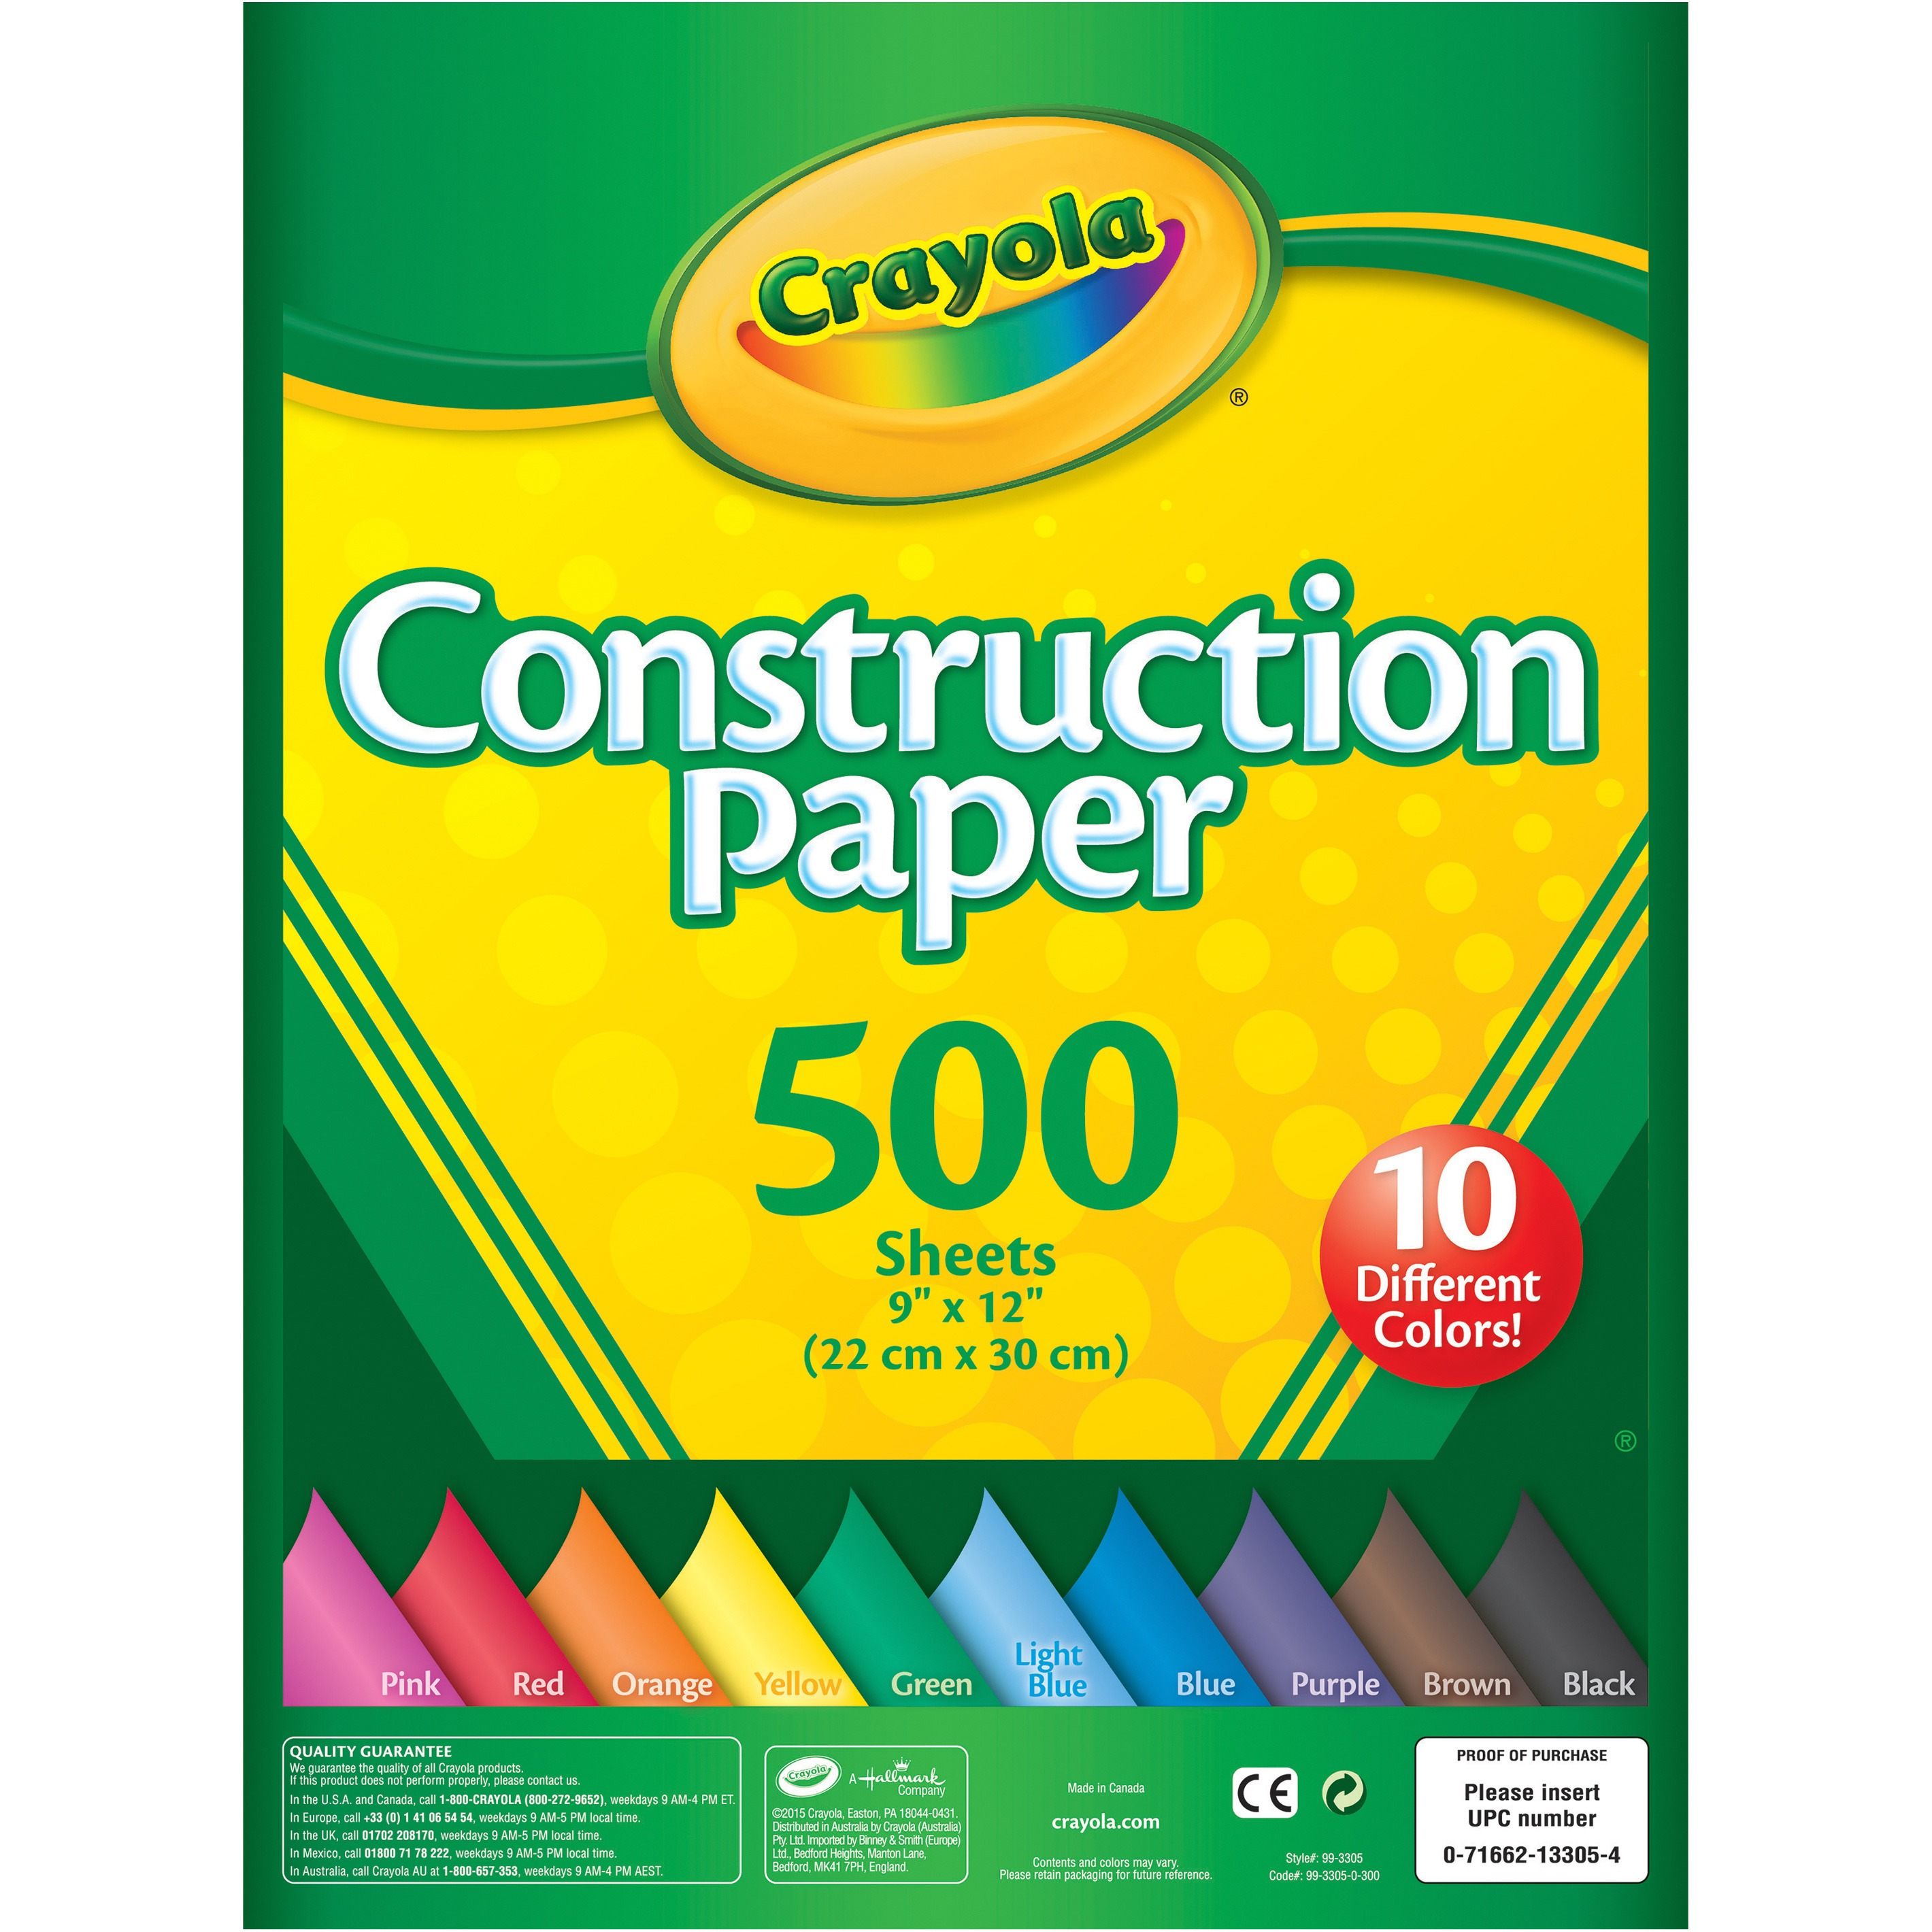 Crayola Construction Paper, 500-Count in 10 Colors by Crayola, LLC